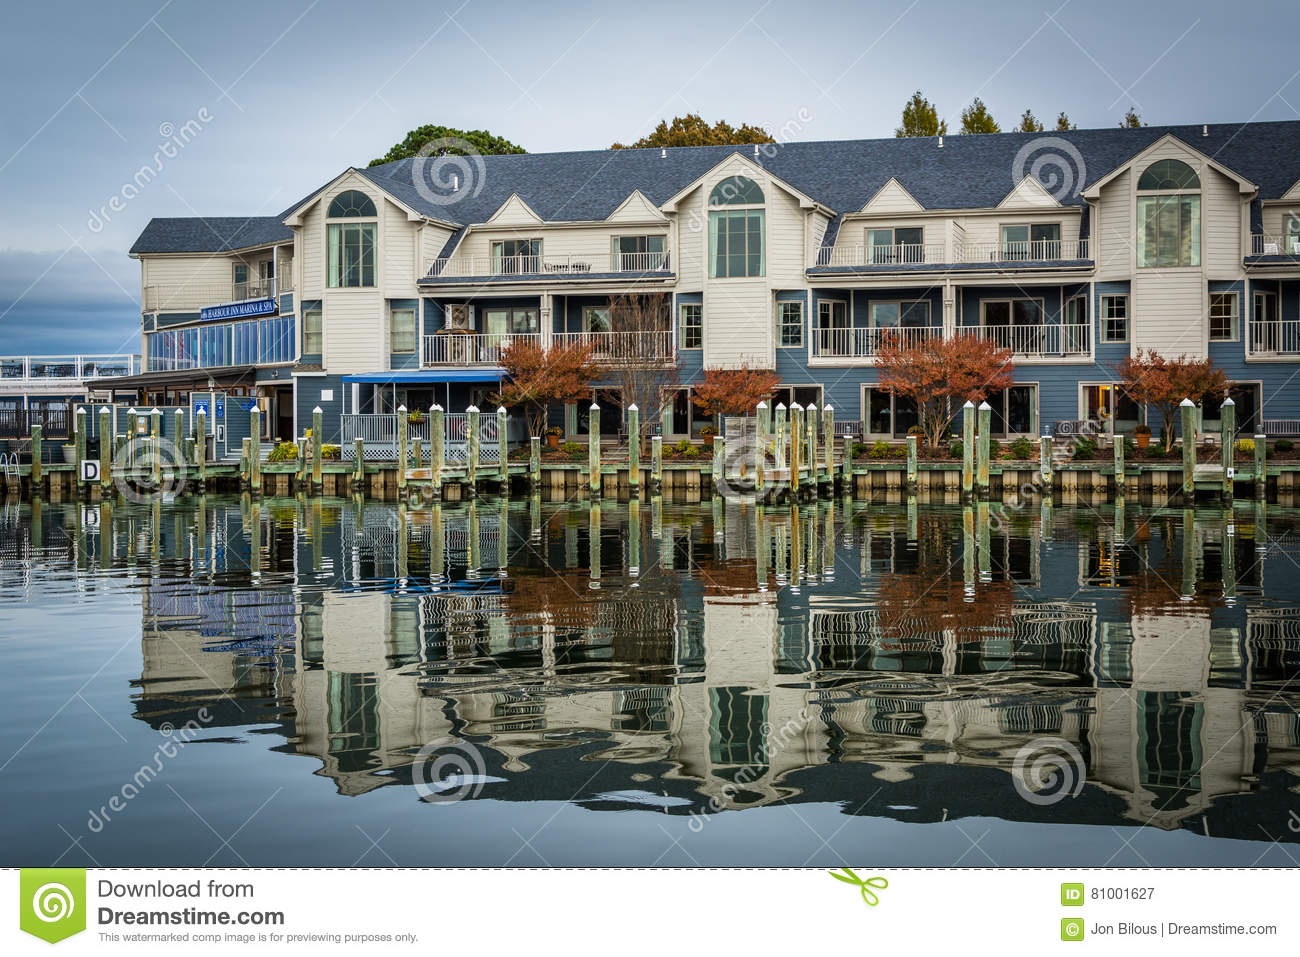 Hotel along the Miles River, in St. Michaels, Maryland.